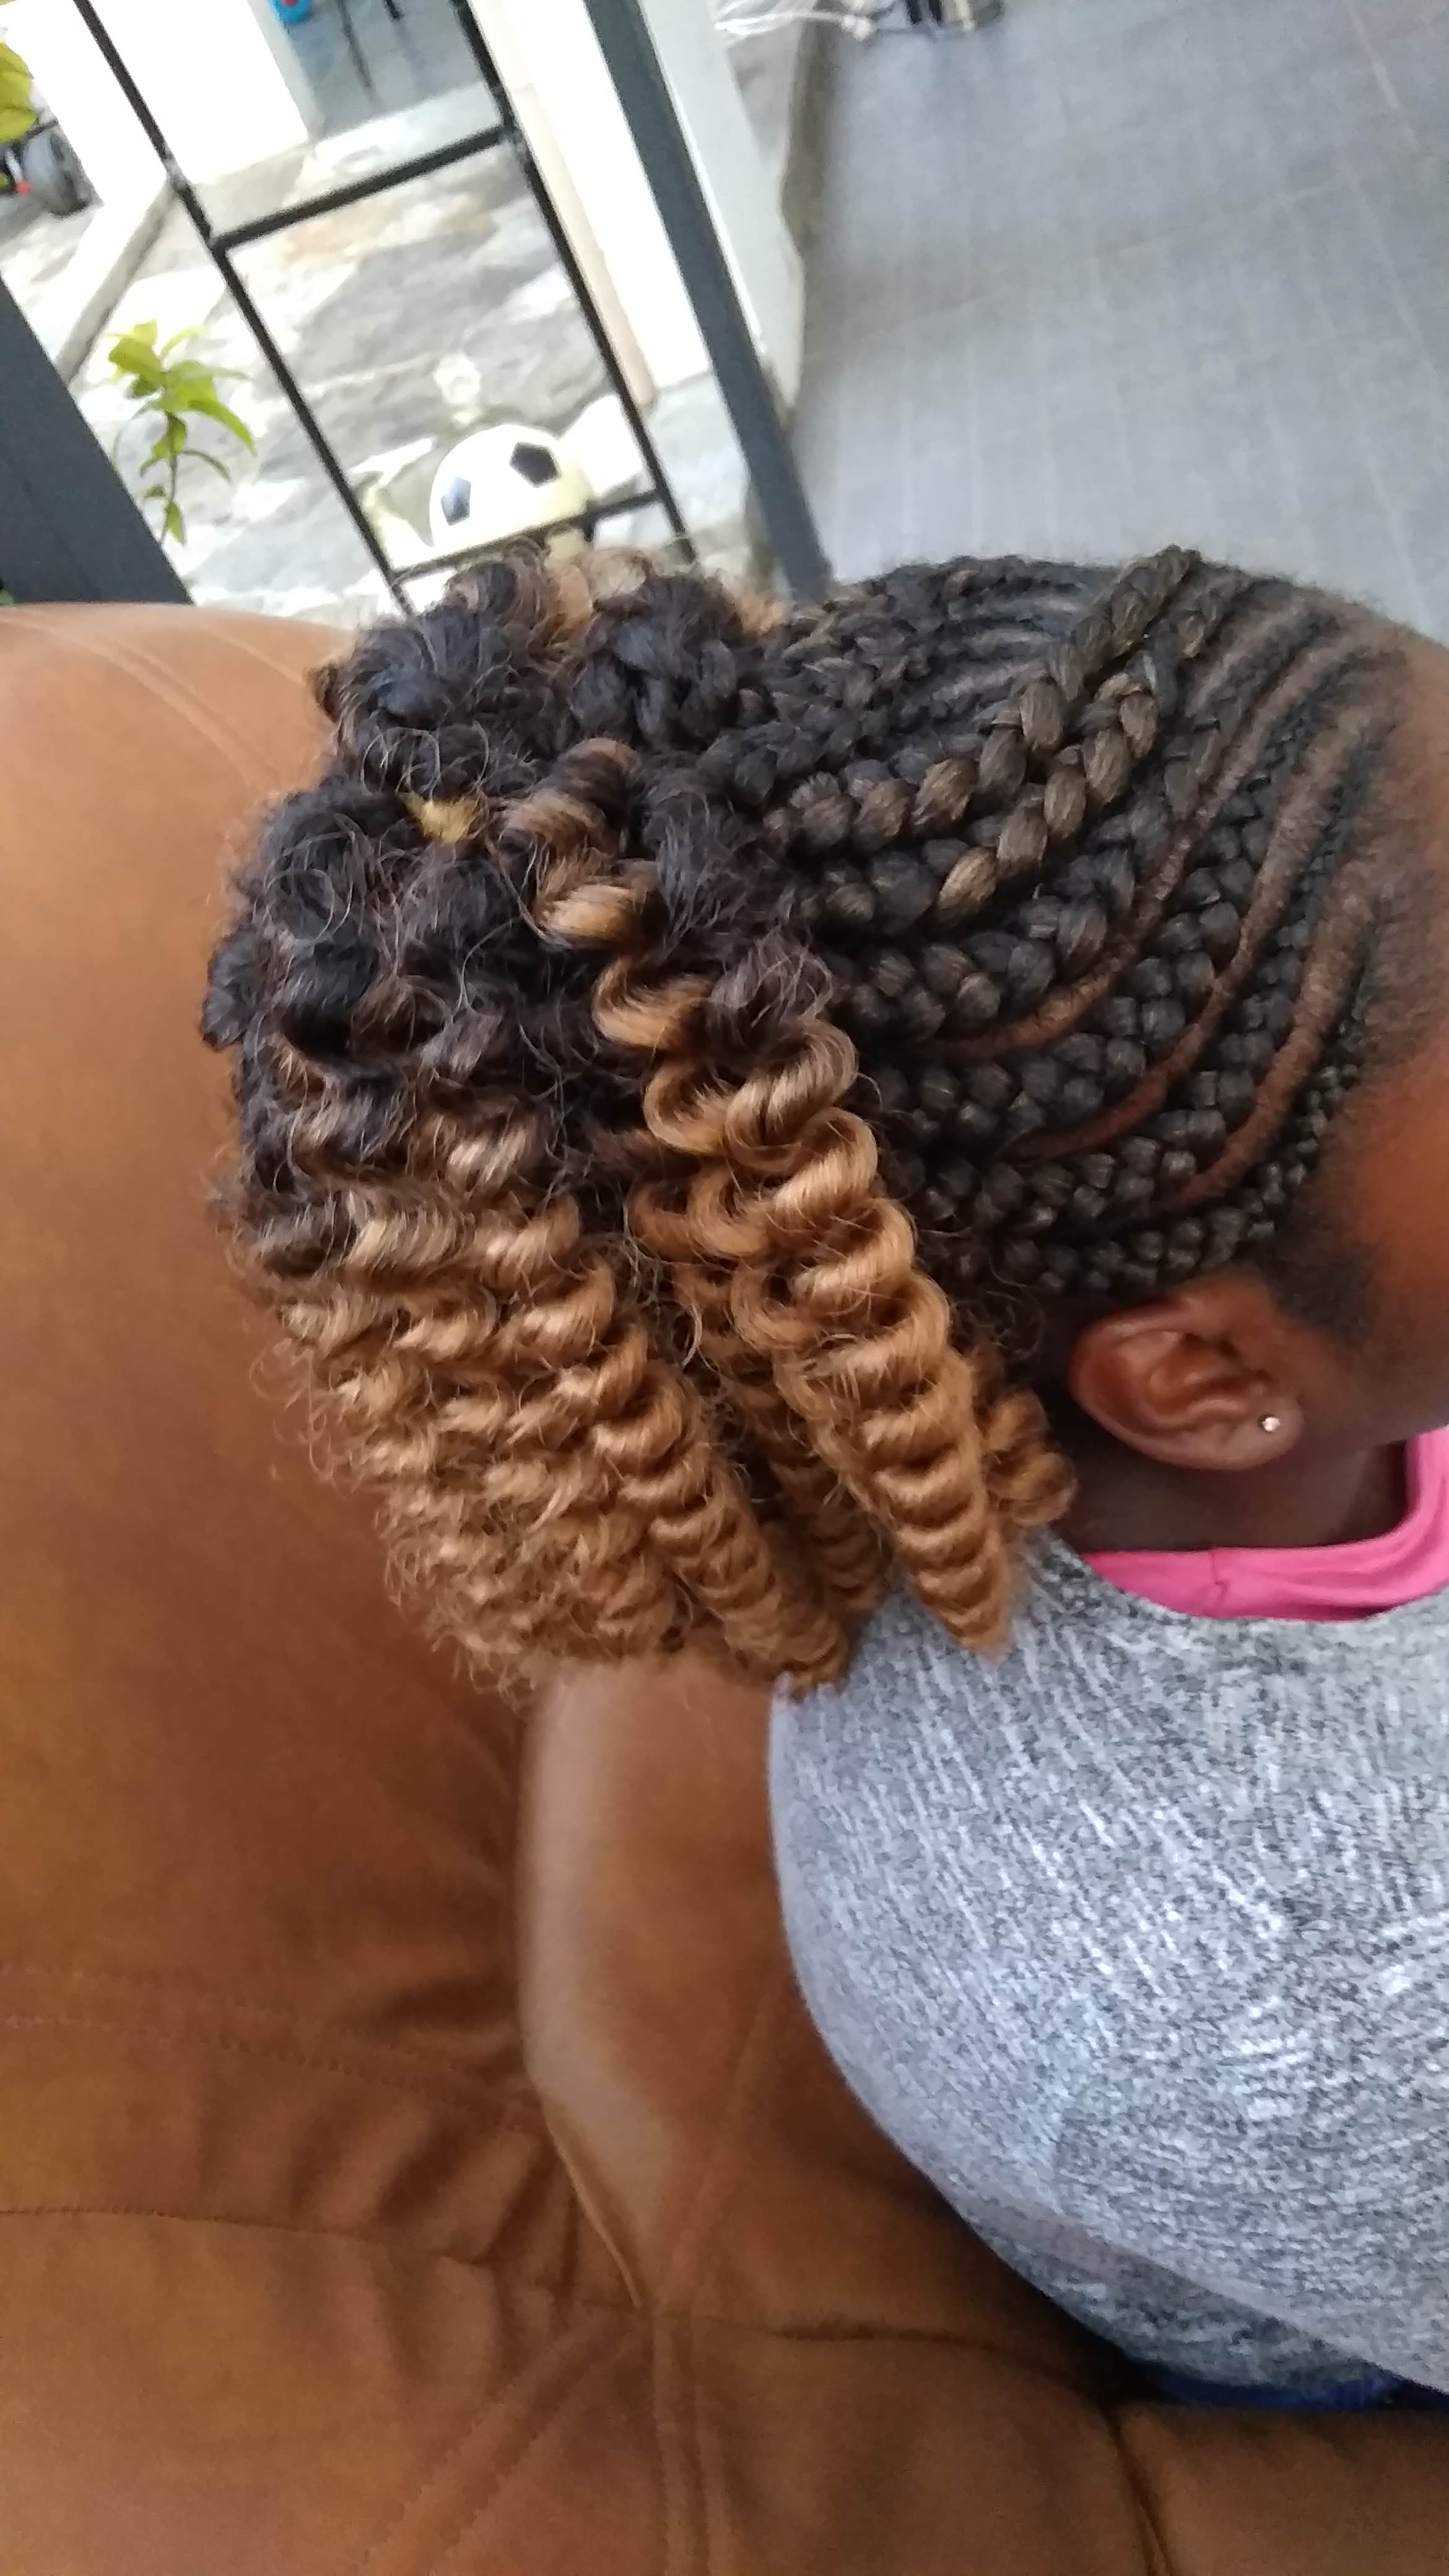 salon de coiffure afro tresse tresses box braids crochet braids vanilles tissages paris 75 77 78 91 92 93 94 95 UZZQBINT